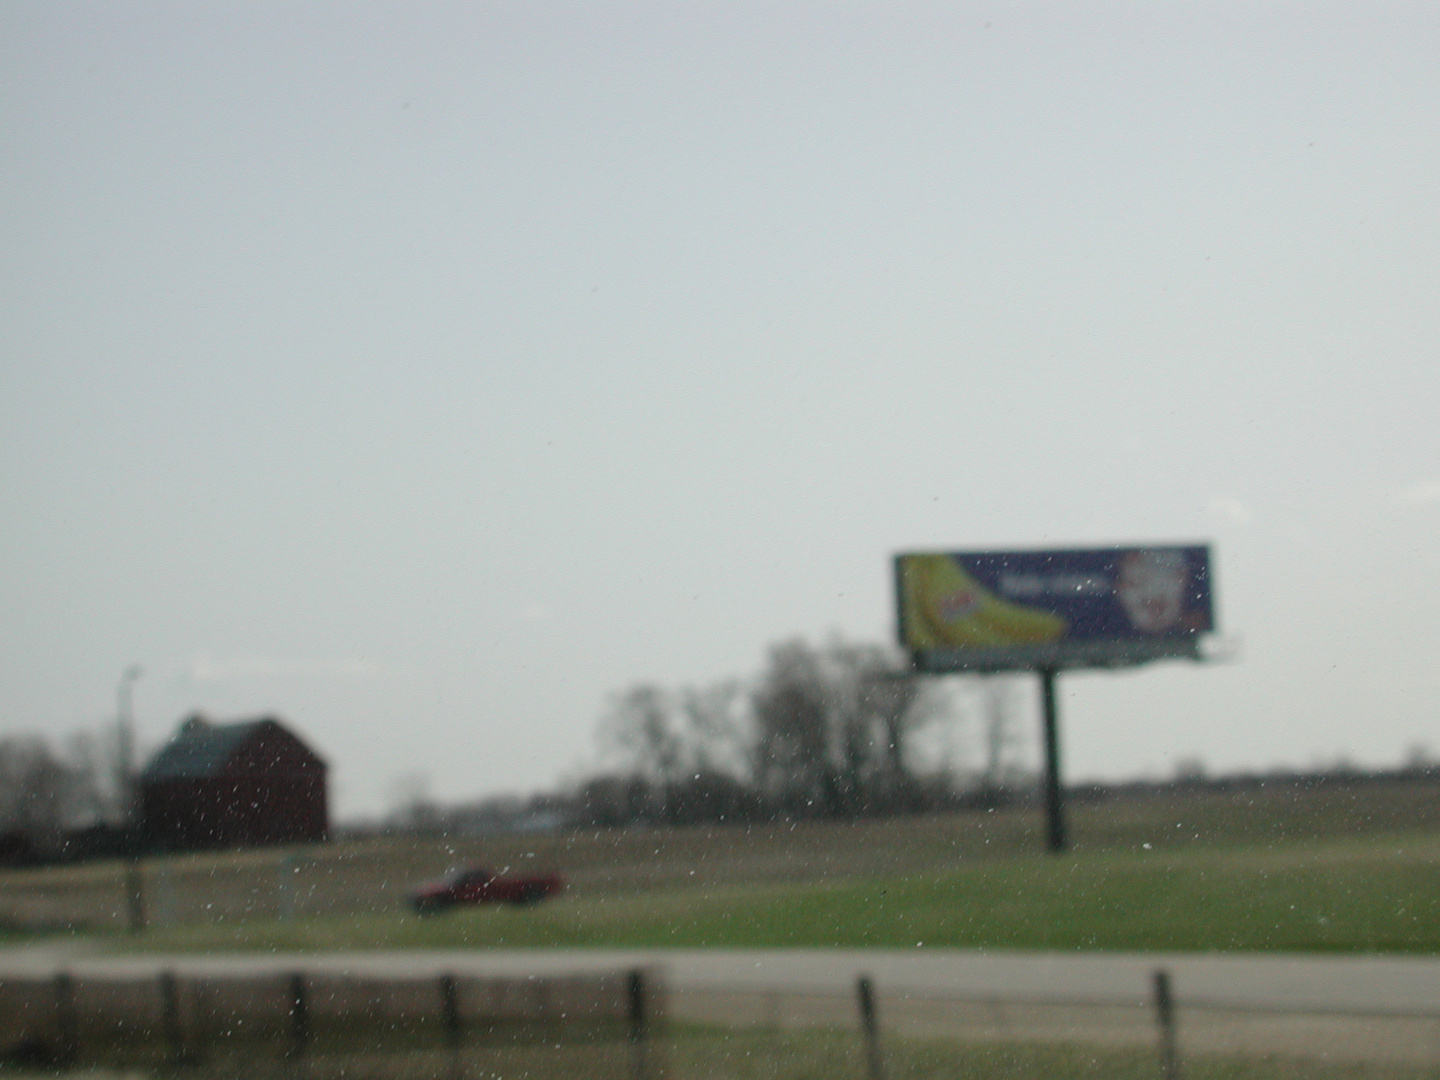 Commute #14 (barn & sign)